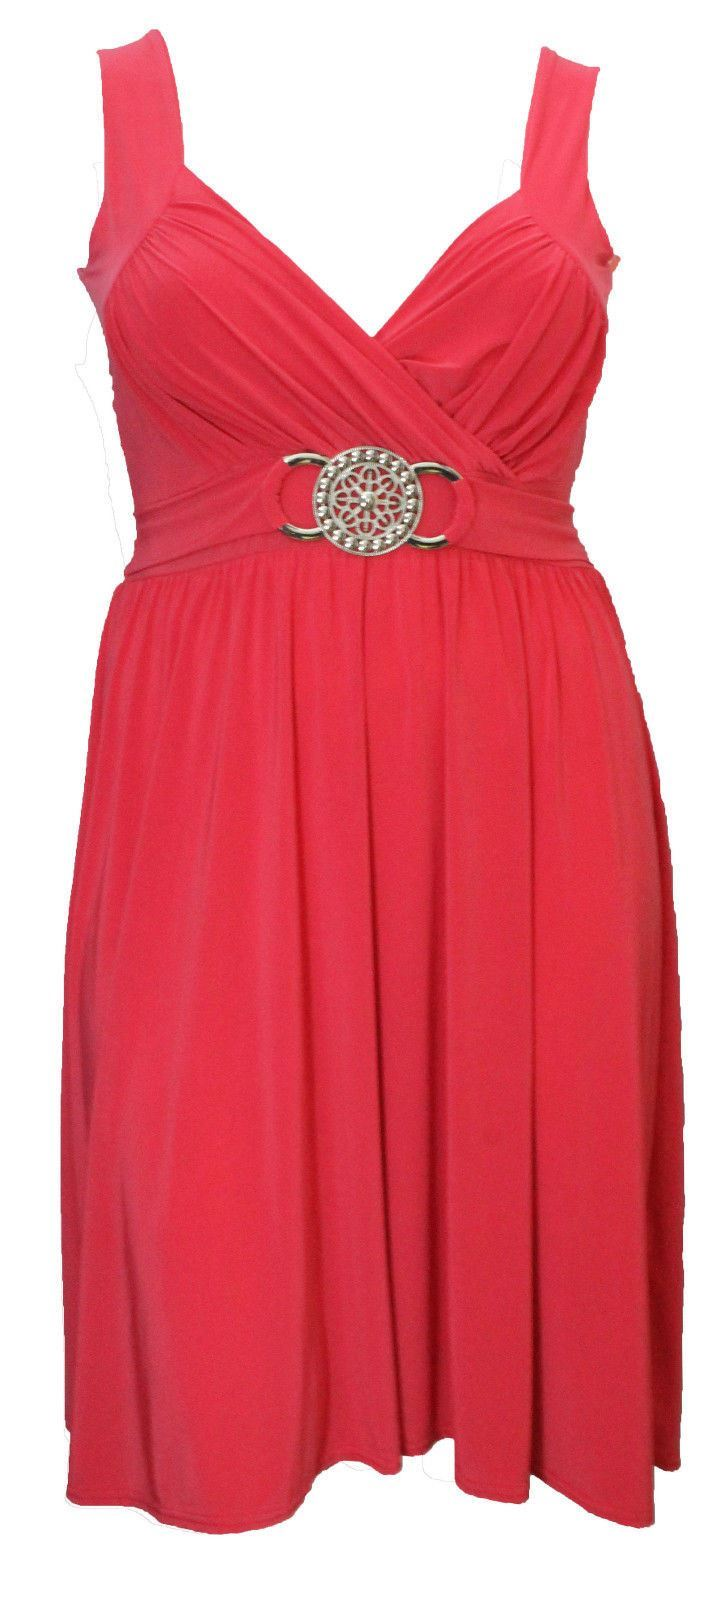 Excellent Details About WOMENS LADIES SLEEVELESS SHORT BUCKLE MAXI DRESS EVENING